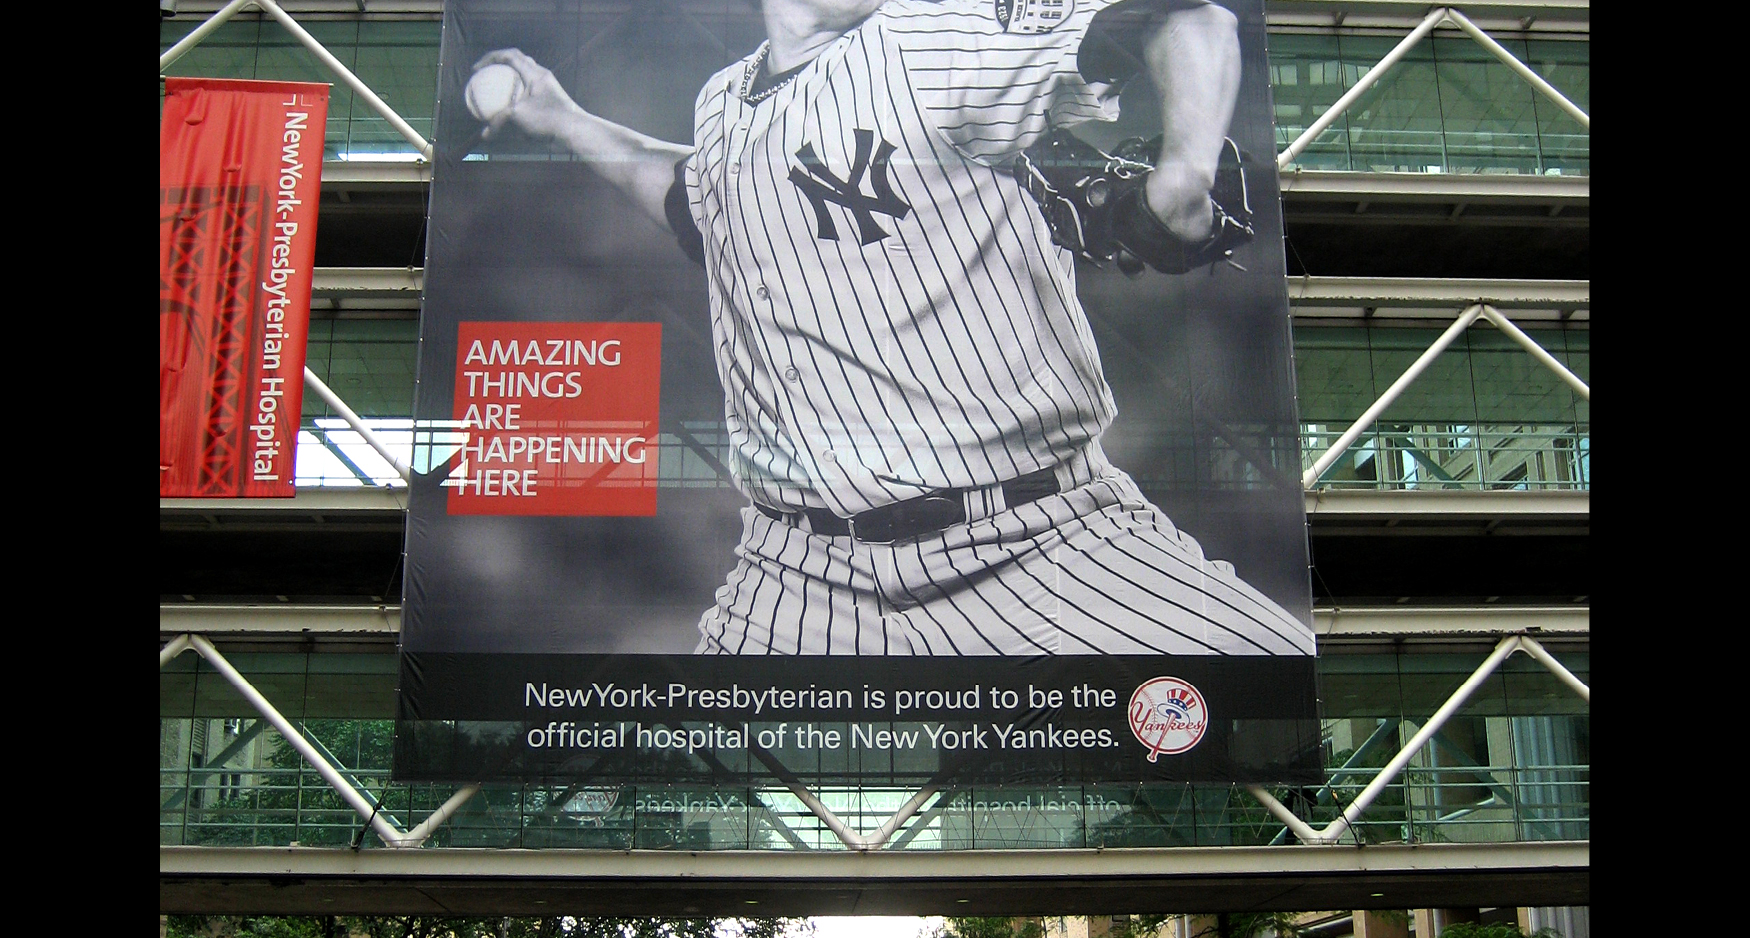 BP Large Images7 - AMAZING THINGS CAMPAIGN - YANKEES BANNER